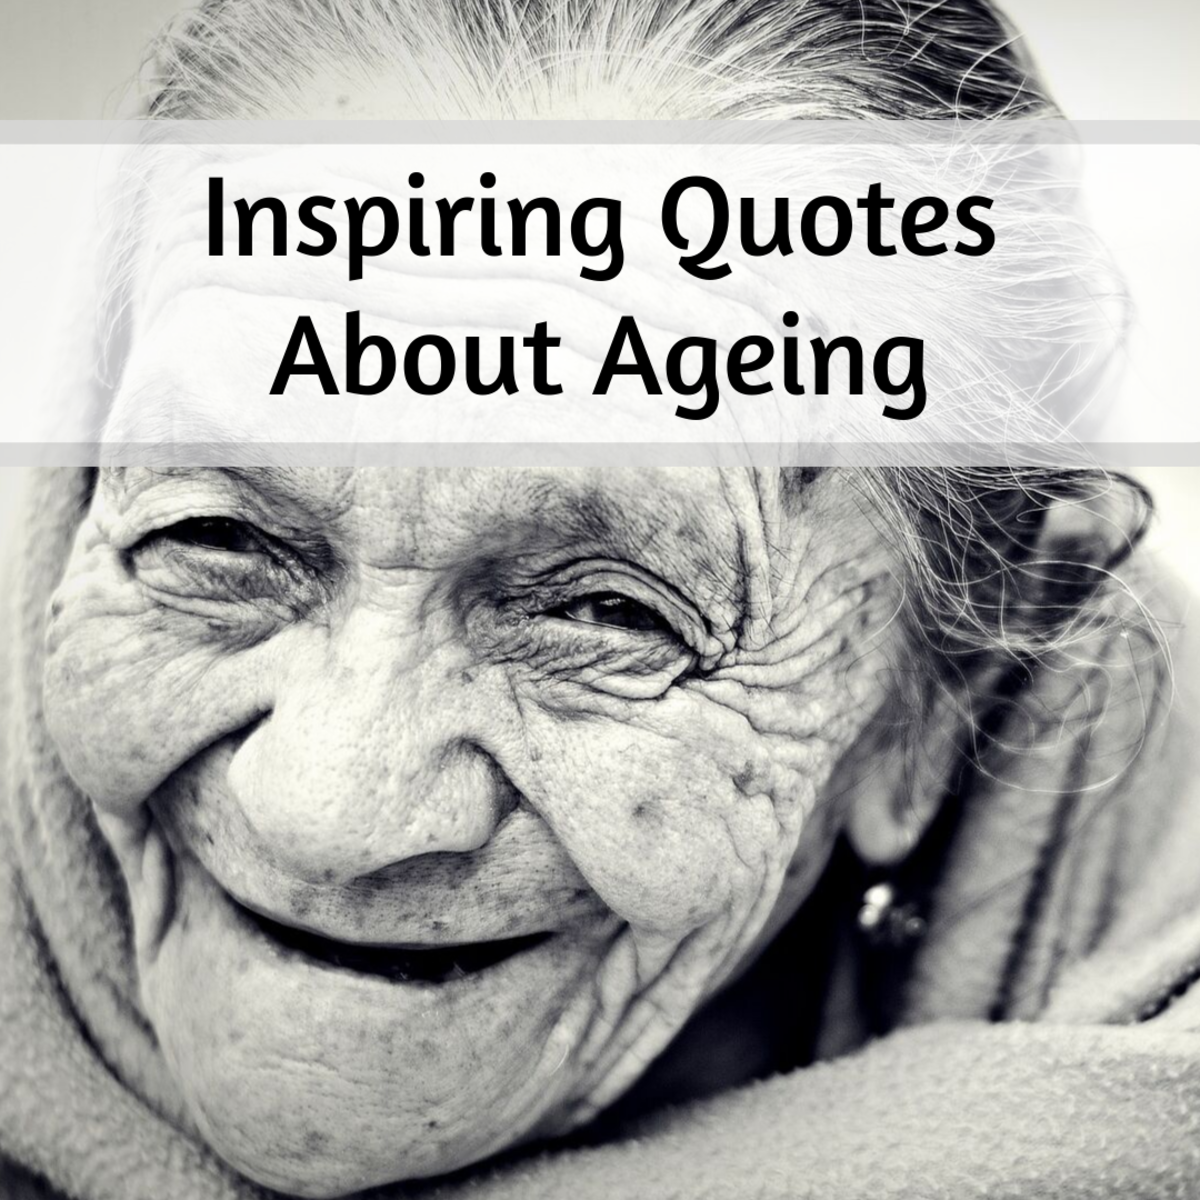 Inspirational Quotes About Age and Ageing